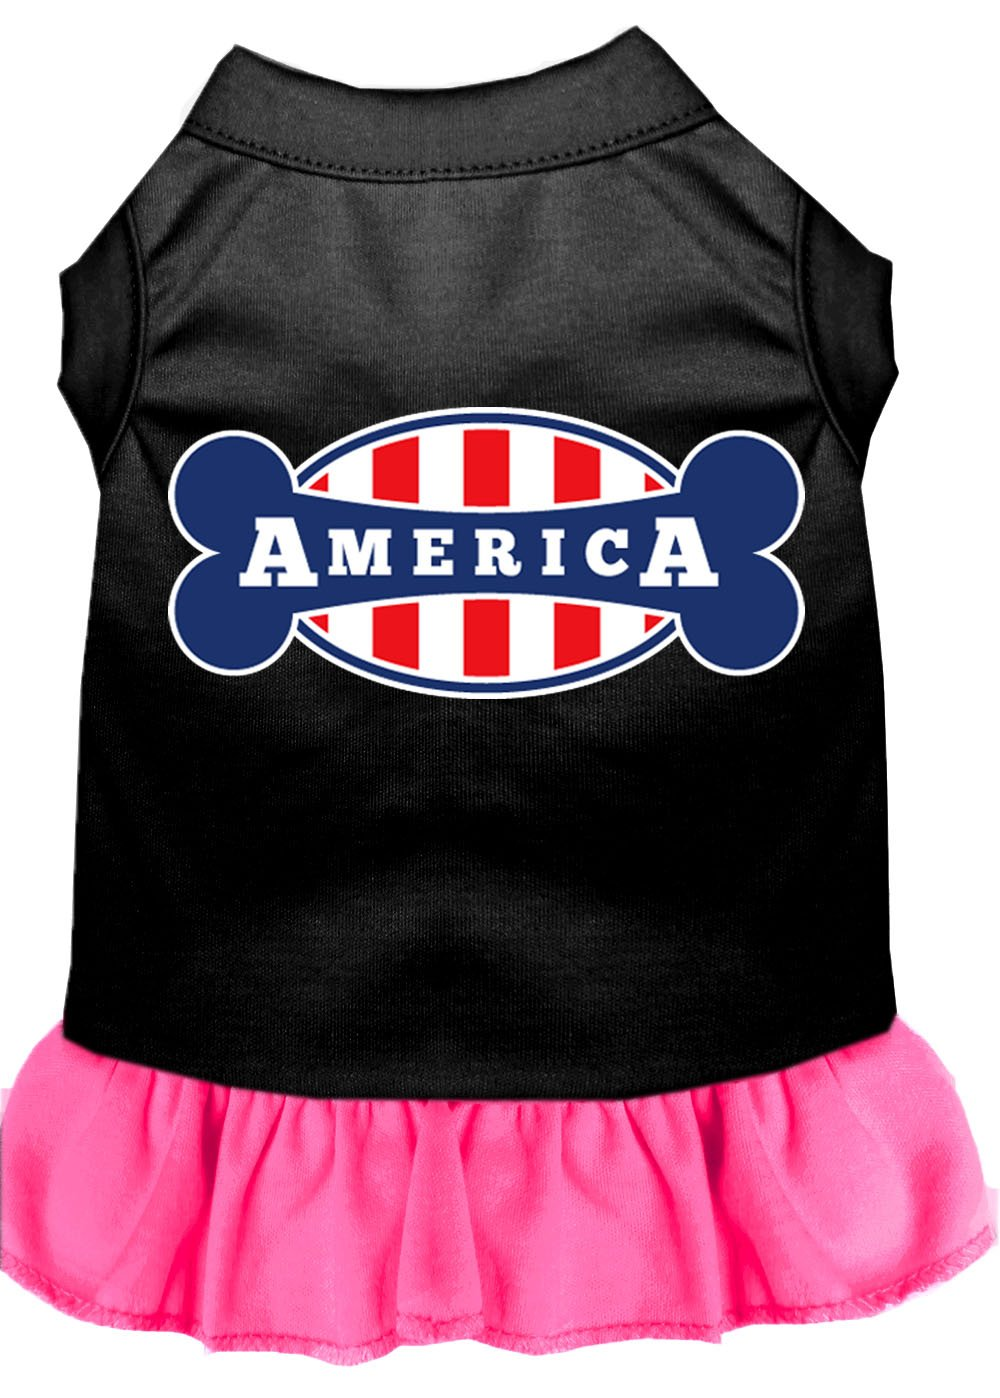 Mirage Pet Products 58-42 XXXLBPBPK Bonely in America Screen Print Dress, 3X-Large, Black with Bright Pink